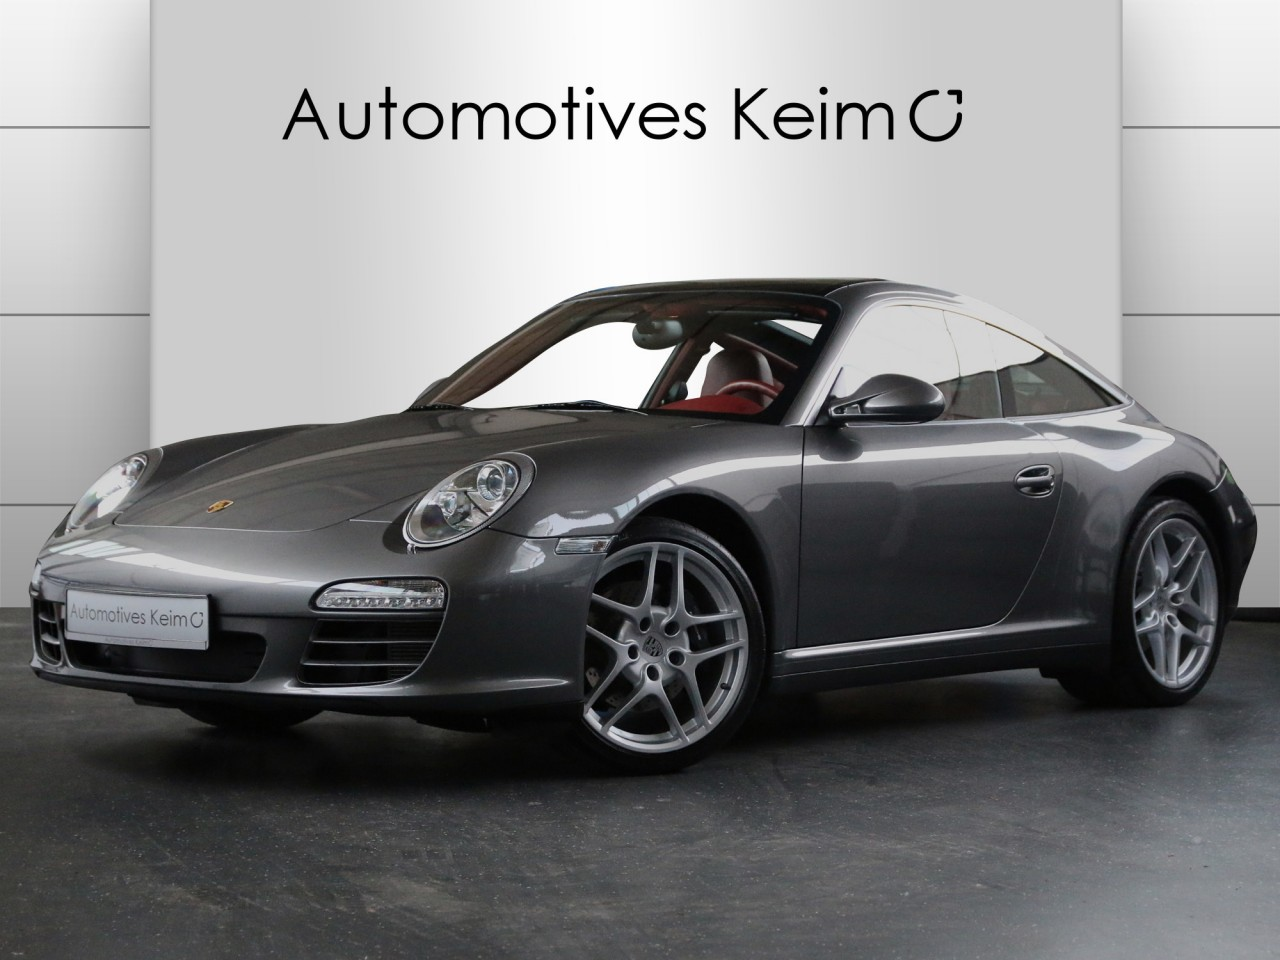 PORSCHE_911_997_Automotives_Keim_GmbH_63500_Seligenstadt_www.automotives-keim.de_oliver_keim_000025